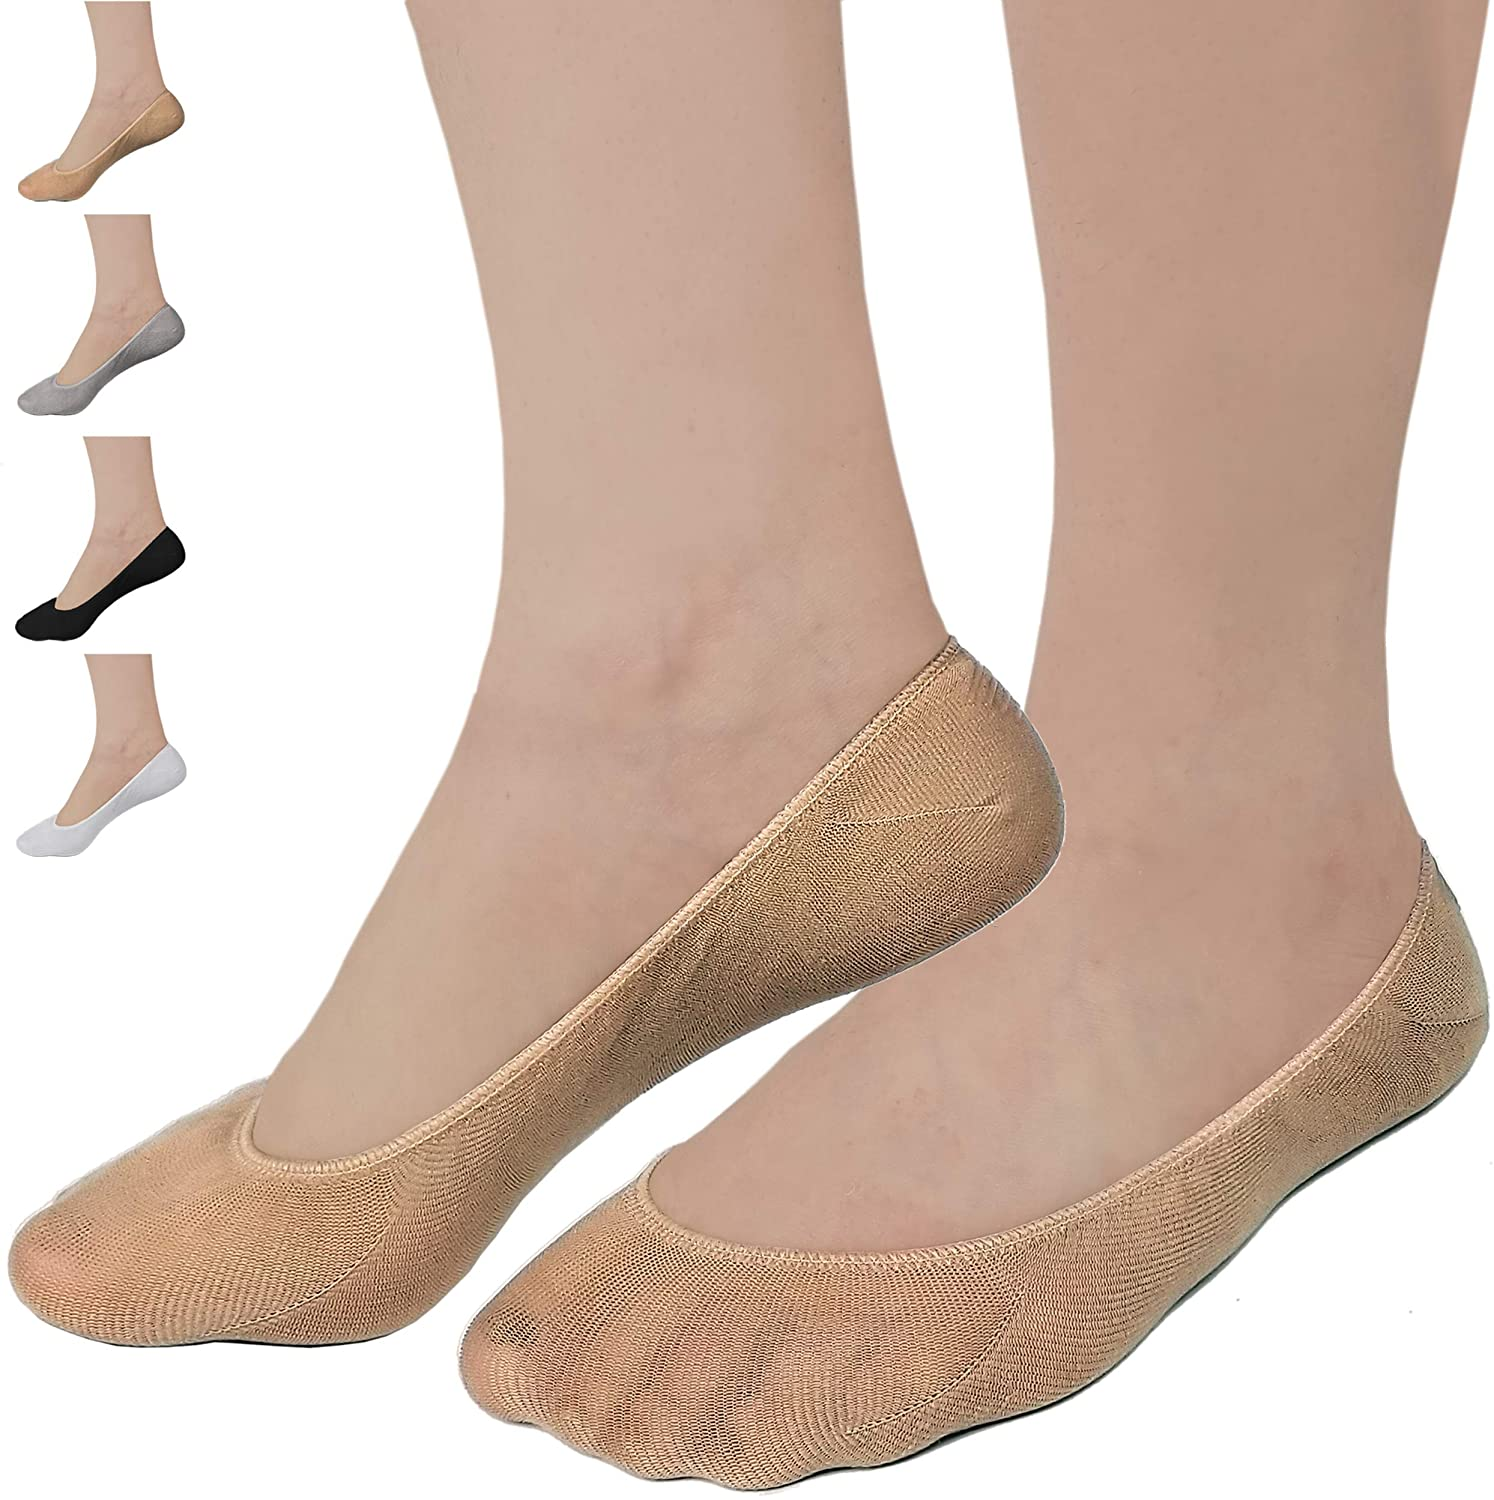 Debra Weitzner Womens Ultra Low Cut No Show Socks Non-Slip Boat Liner For Flats - 12 Pairs Beige/Grey S/M